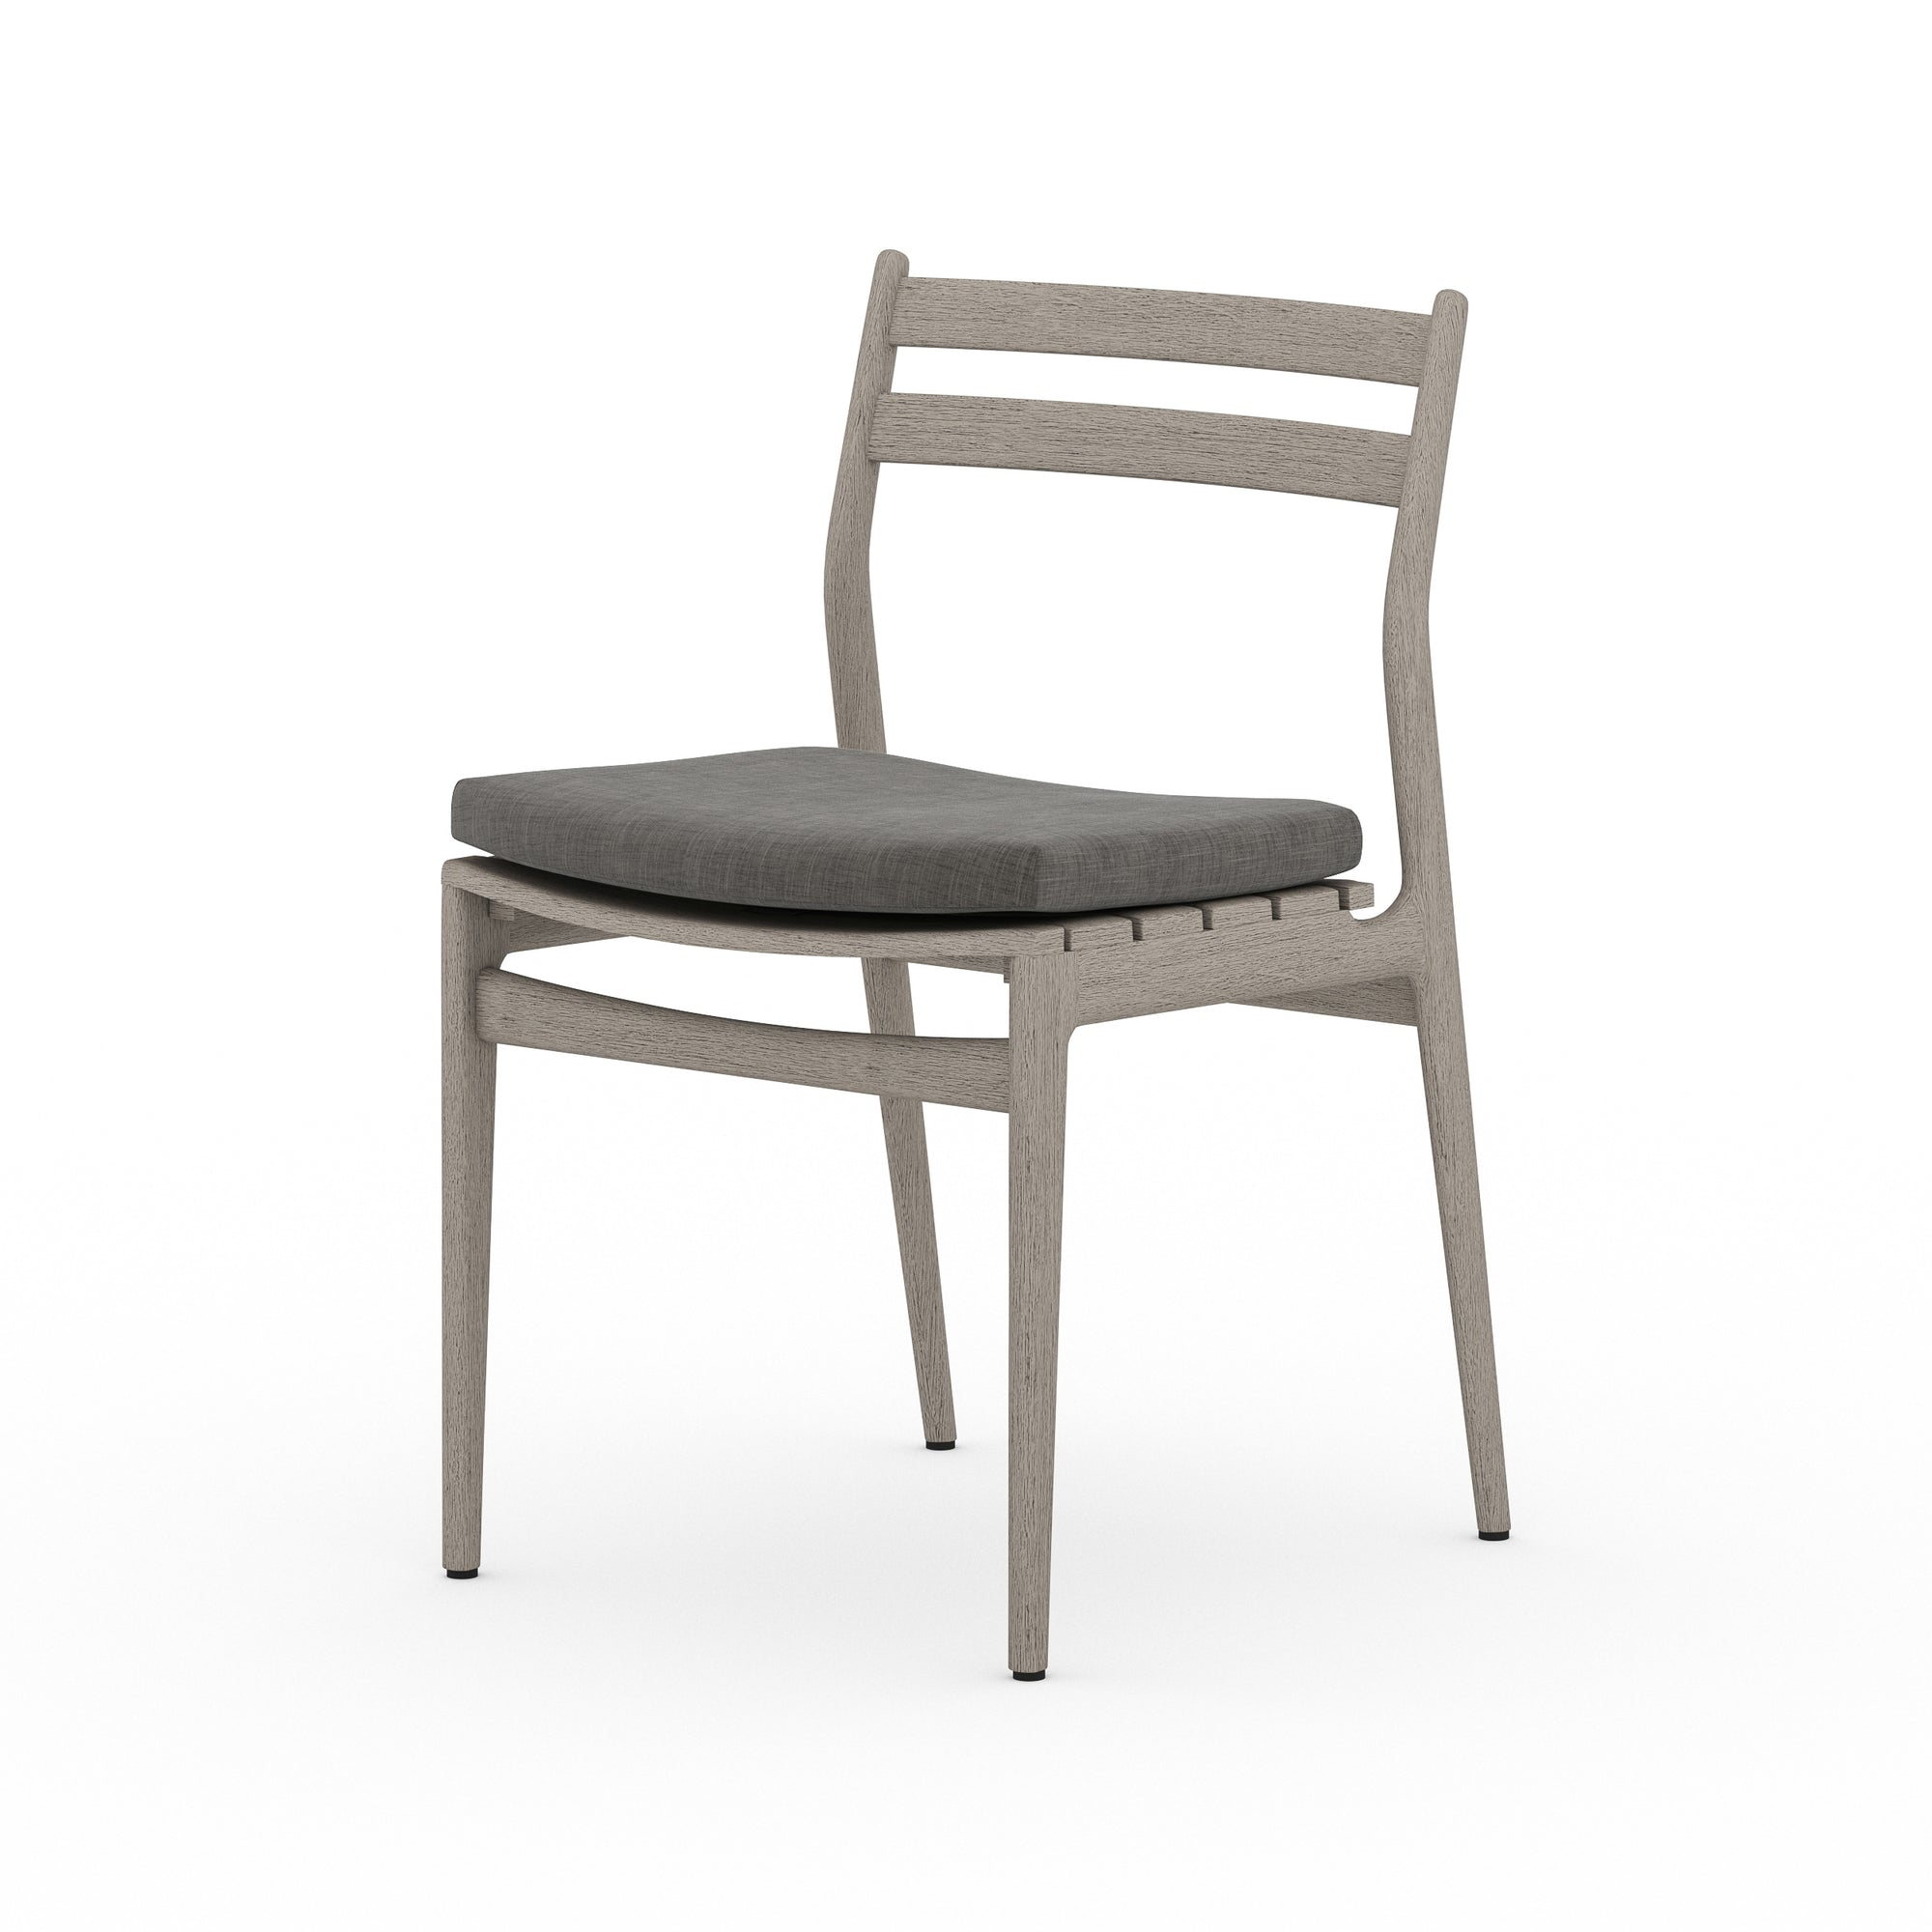 Atherton Outdoor Dining Chair - Grey/Charc